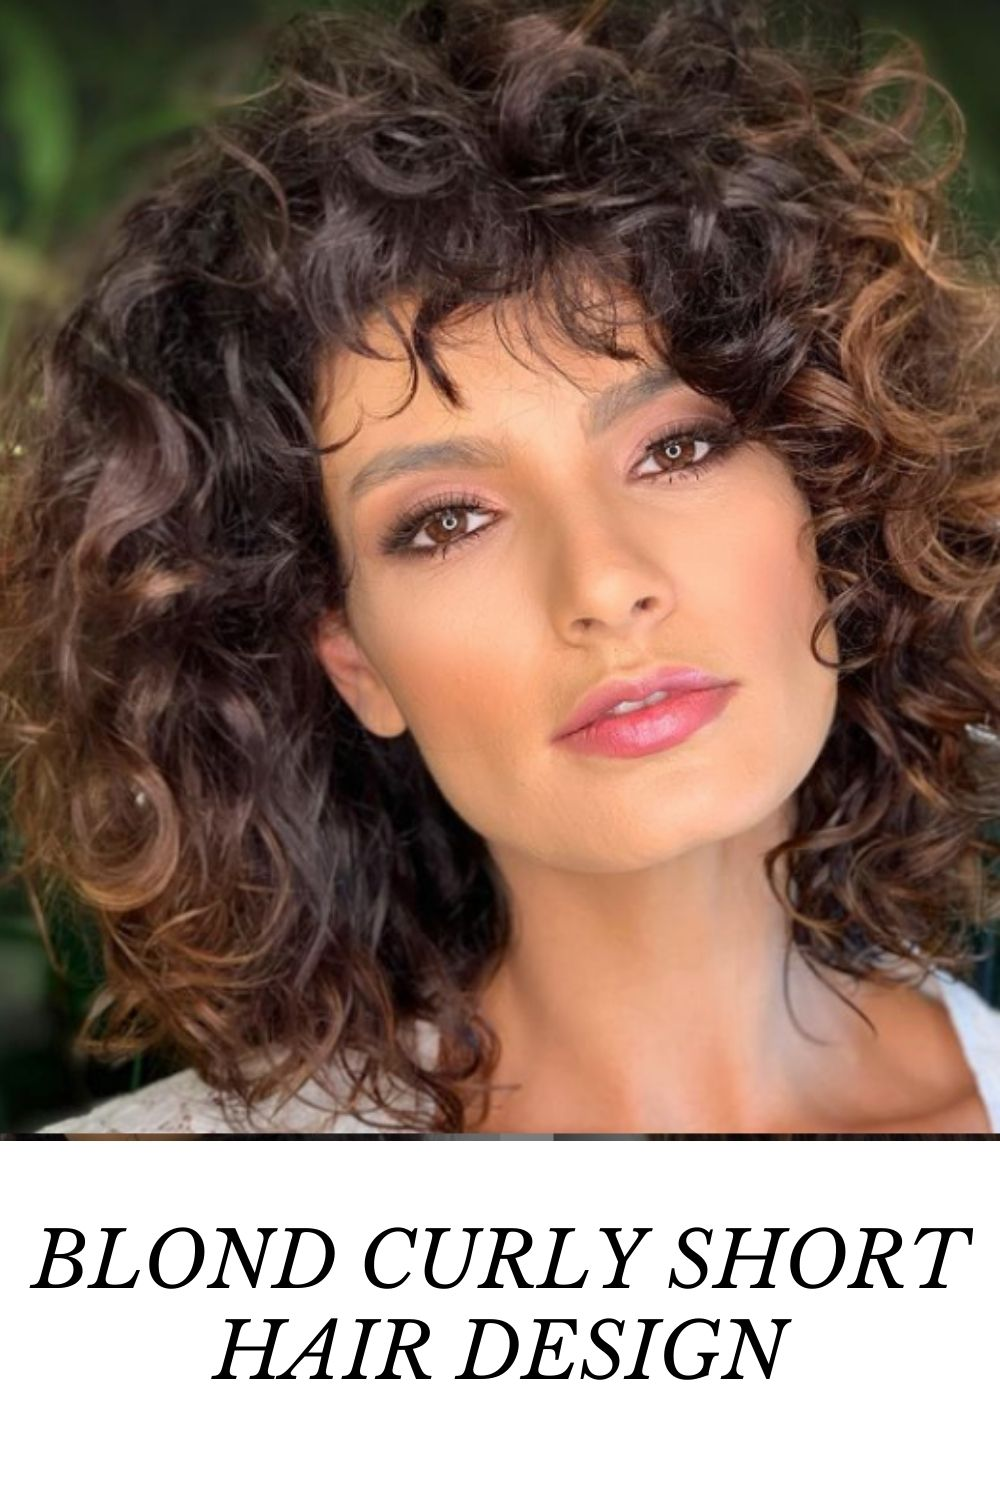 What Is Curly Short Hair?